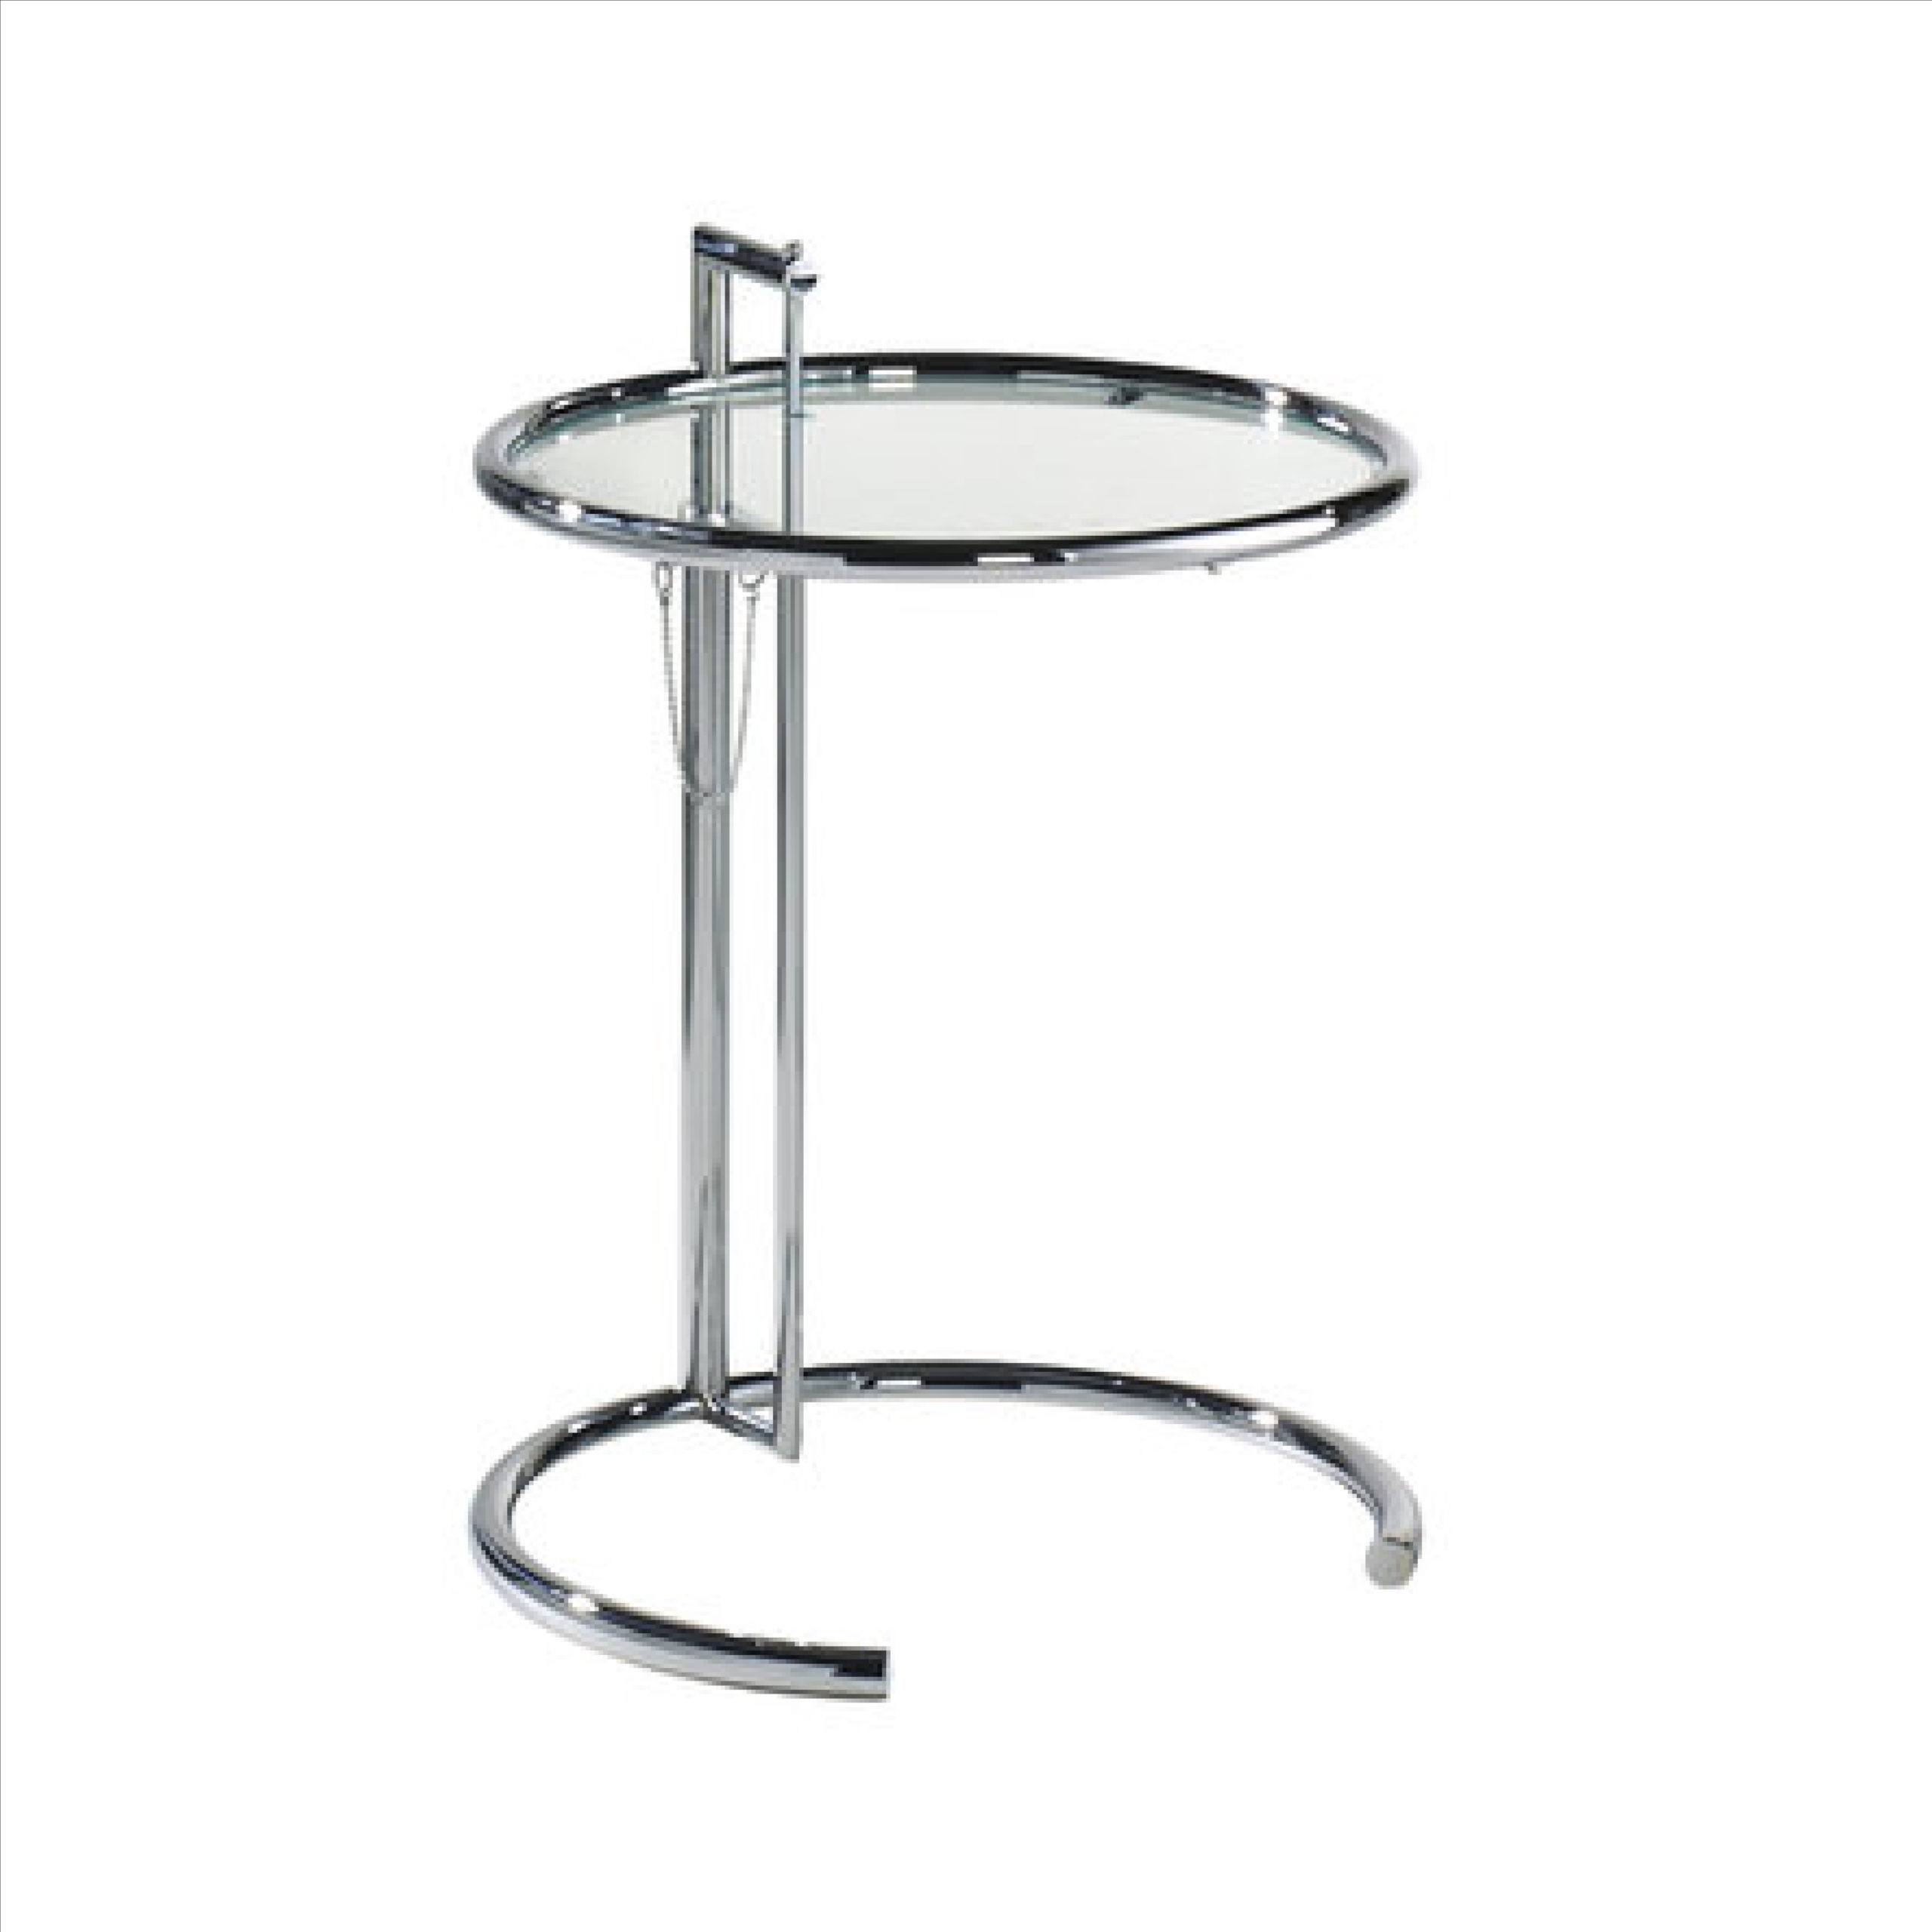 Lay-8 [CLASSICON Adjustable Table]